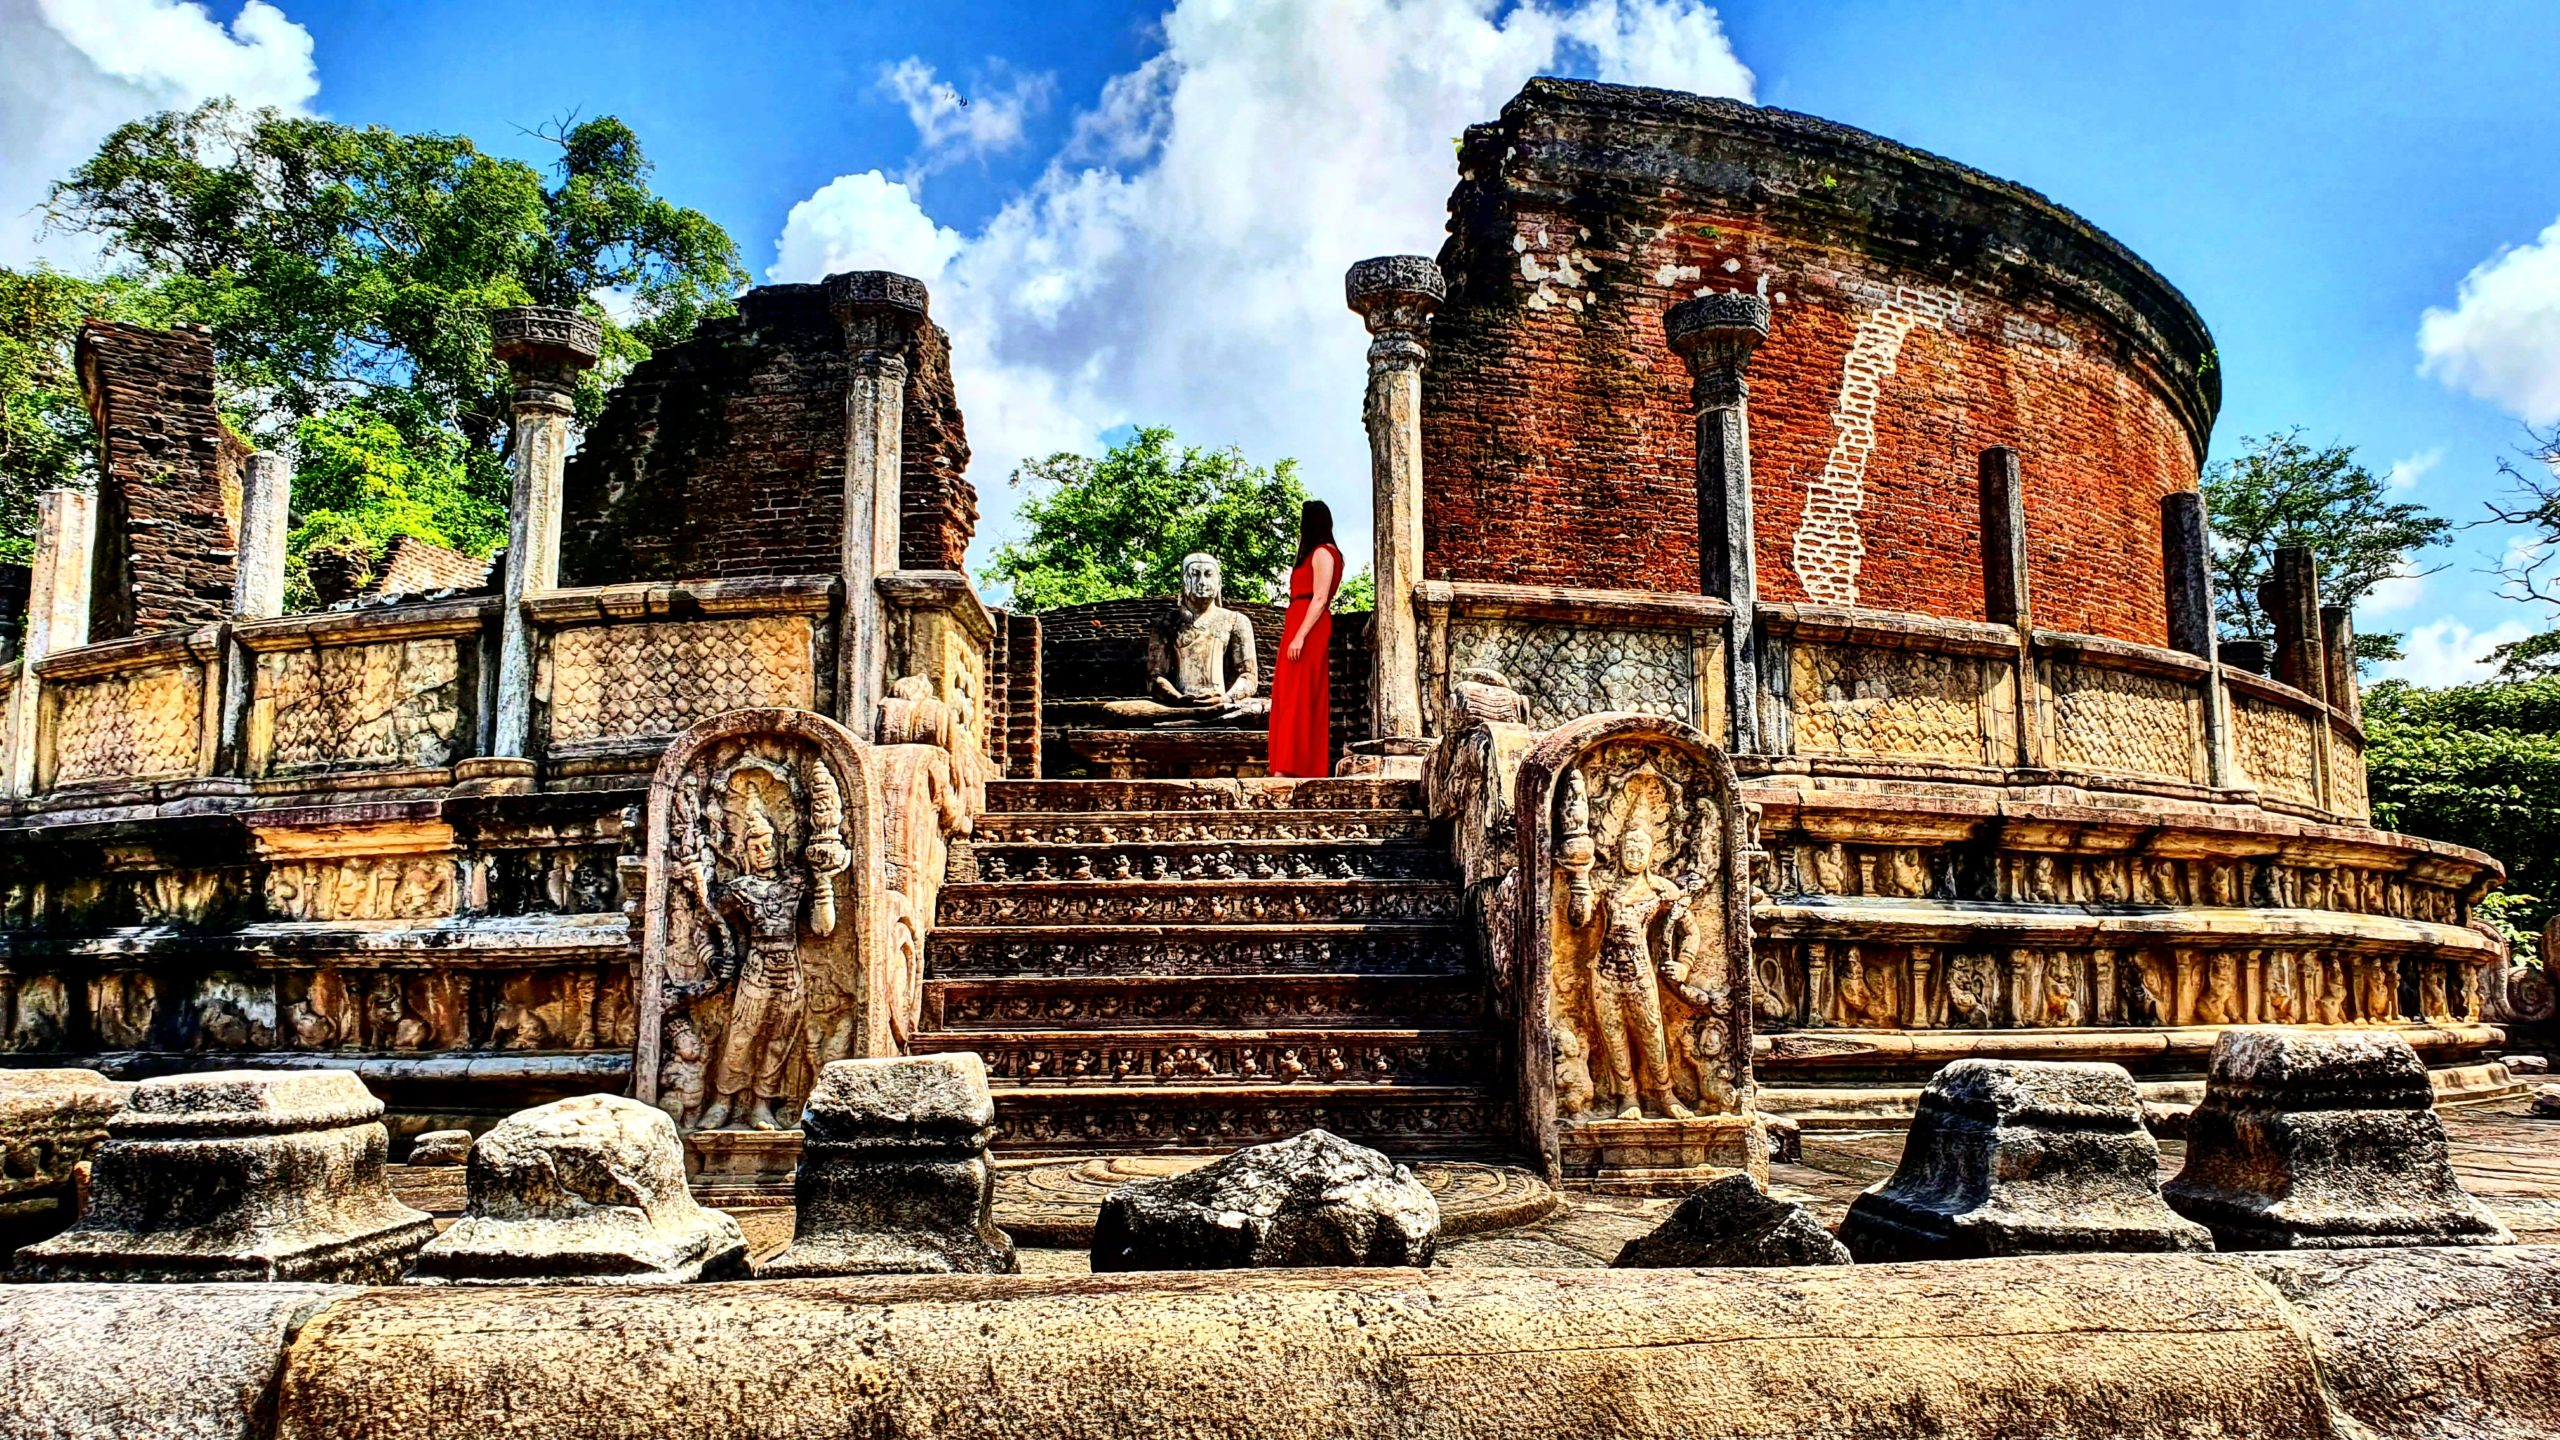 Polonnaruwa is one of the top things to do in Sri Lanka